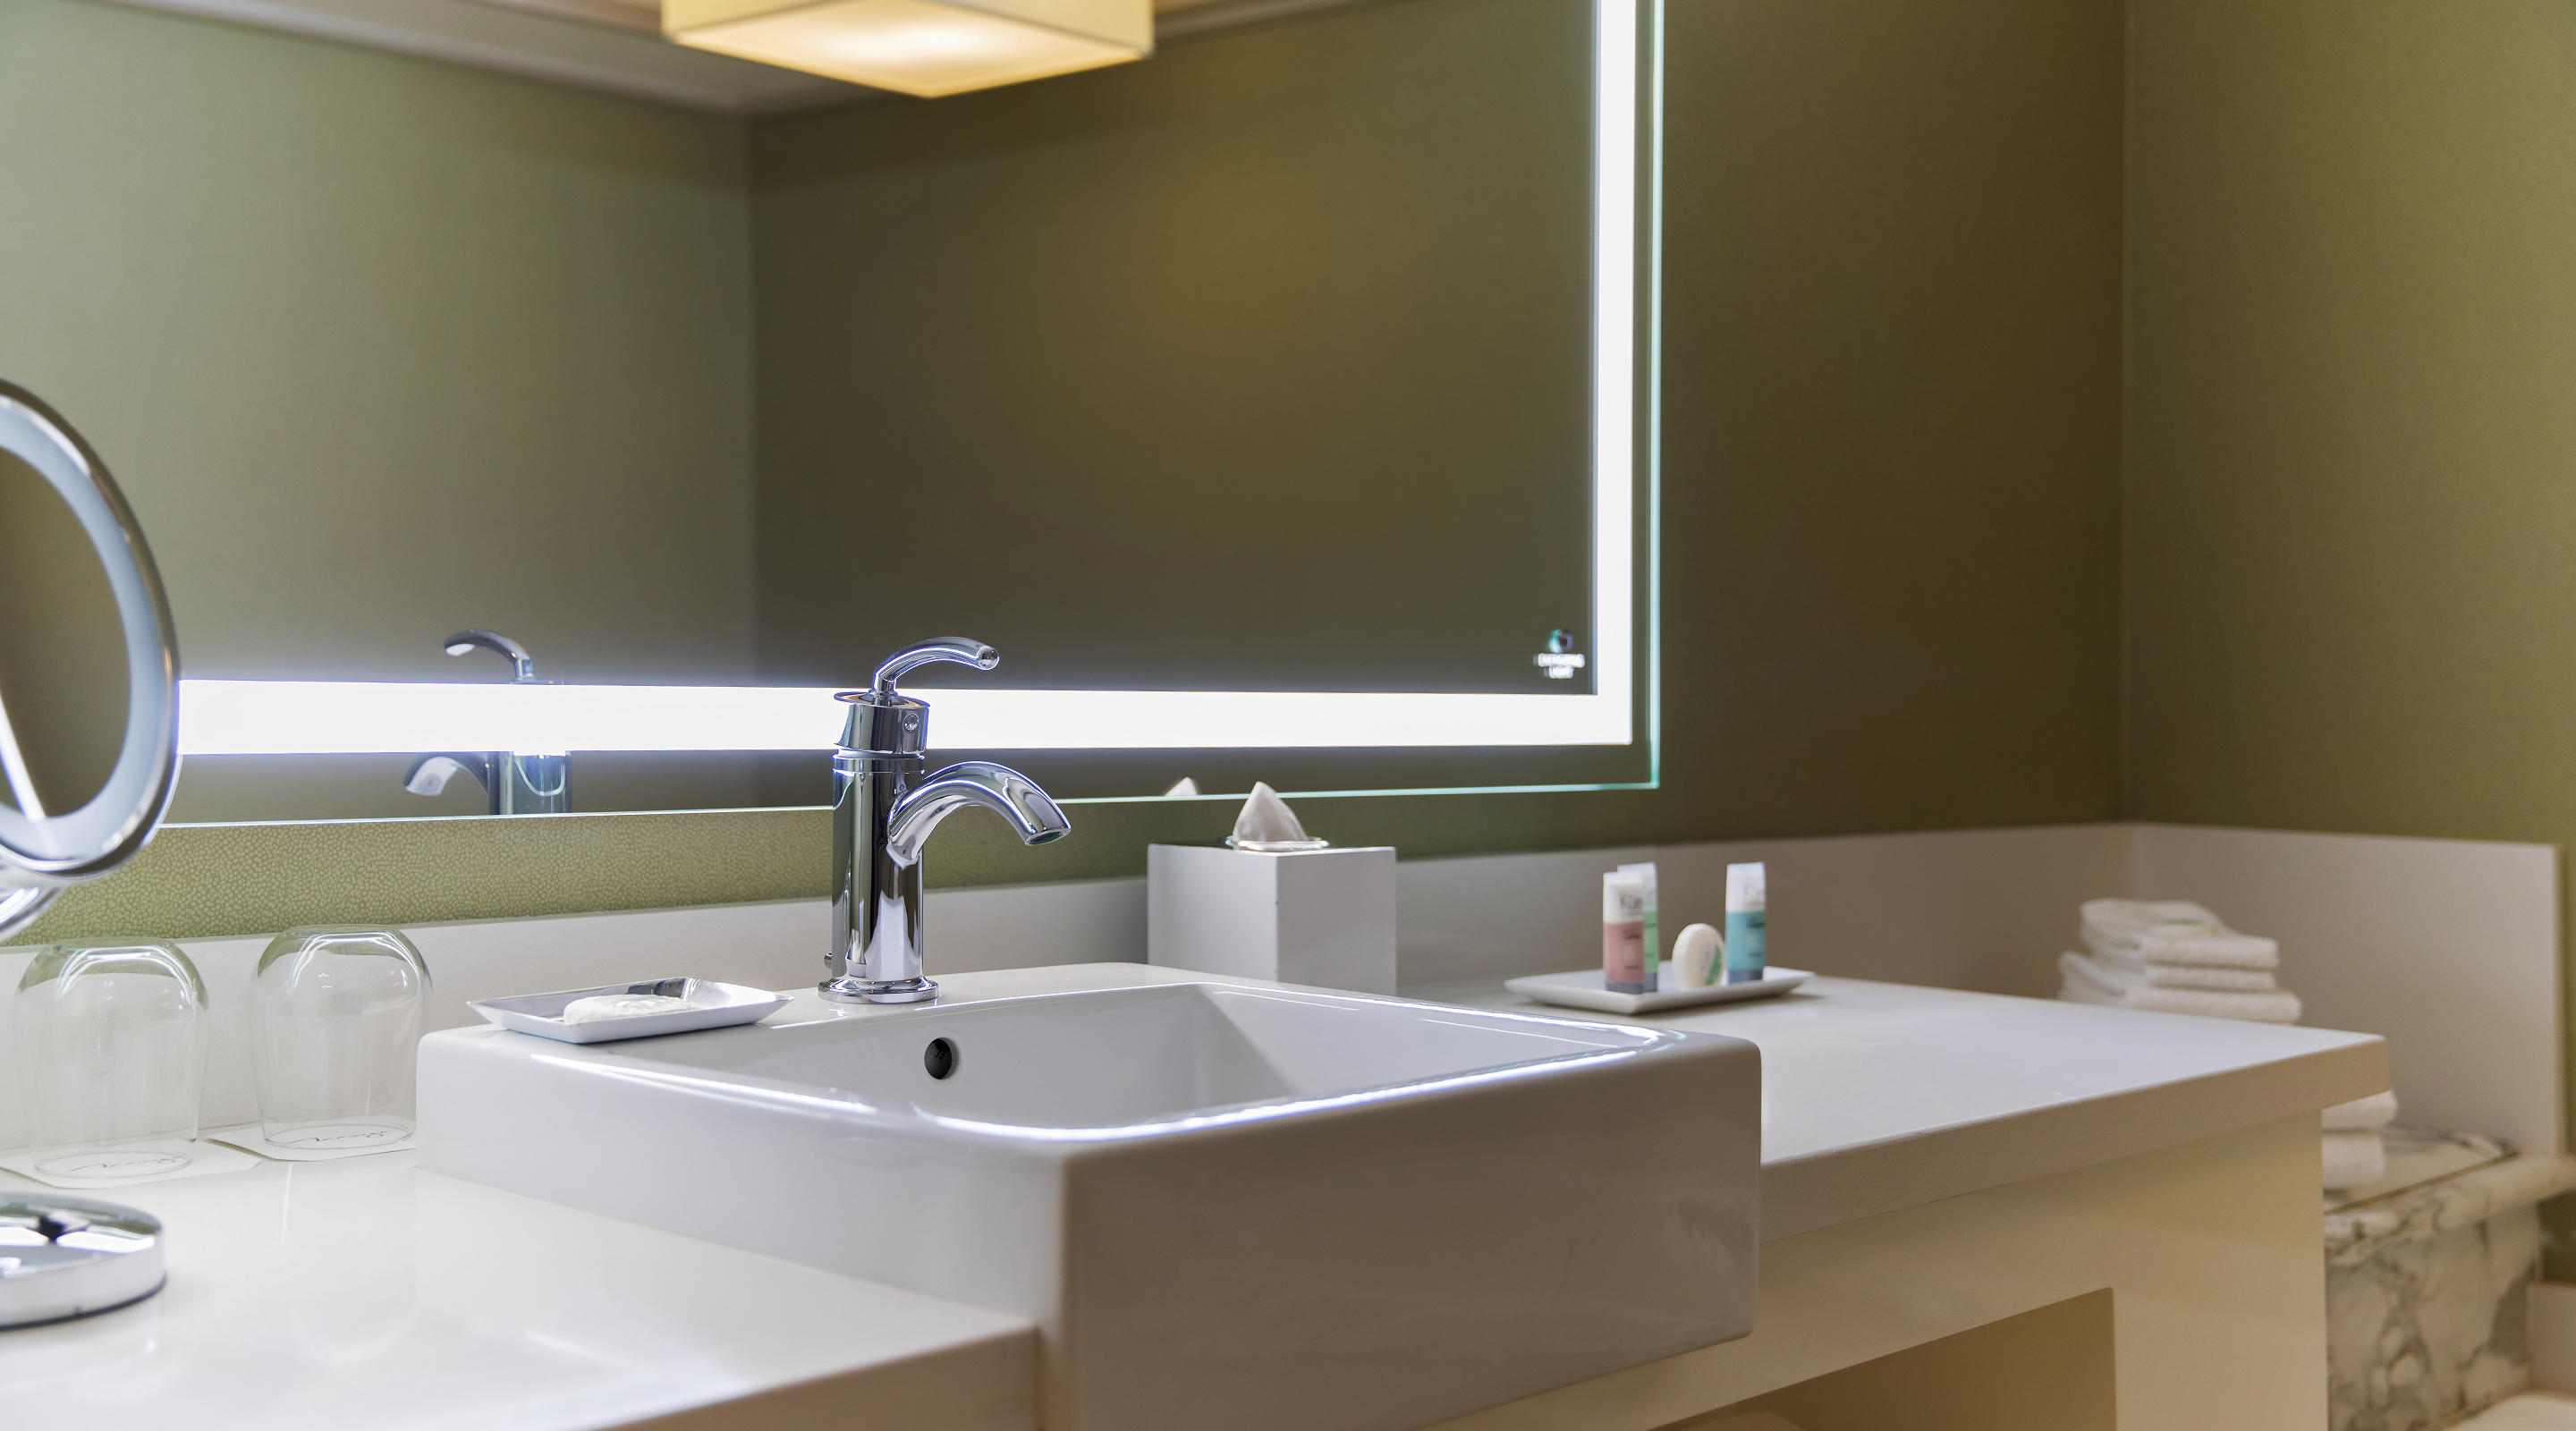 Mirage Stay Well bathroom sink and mirror with energizing light.